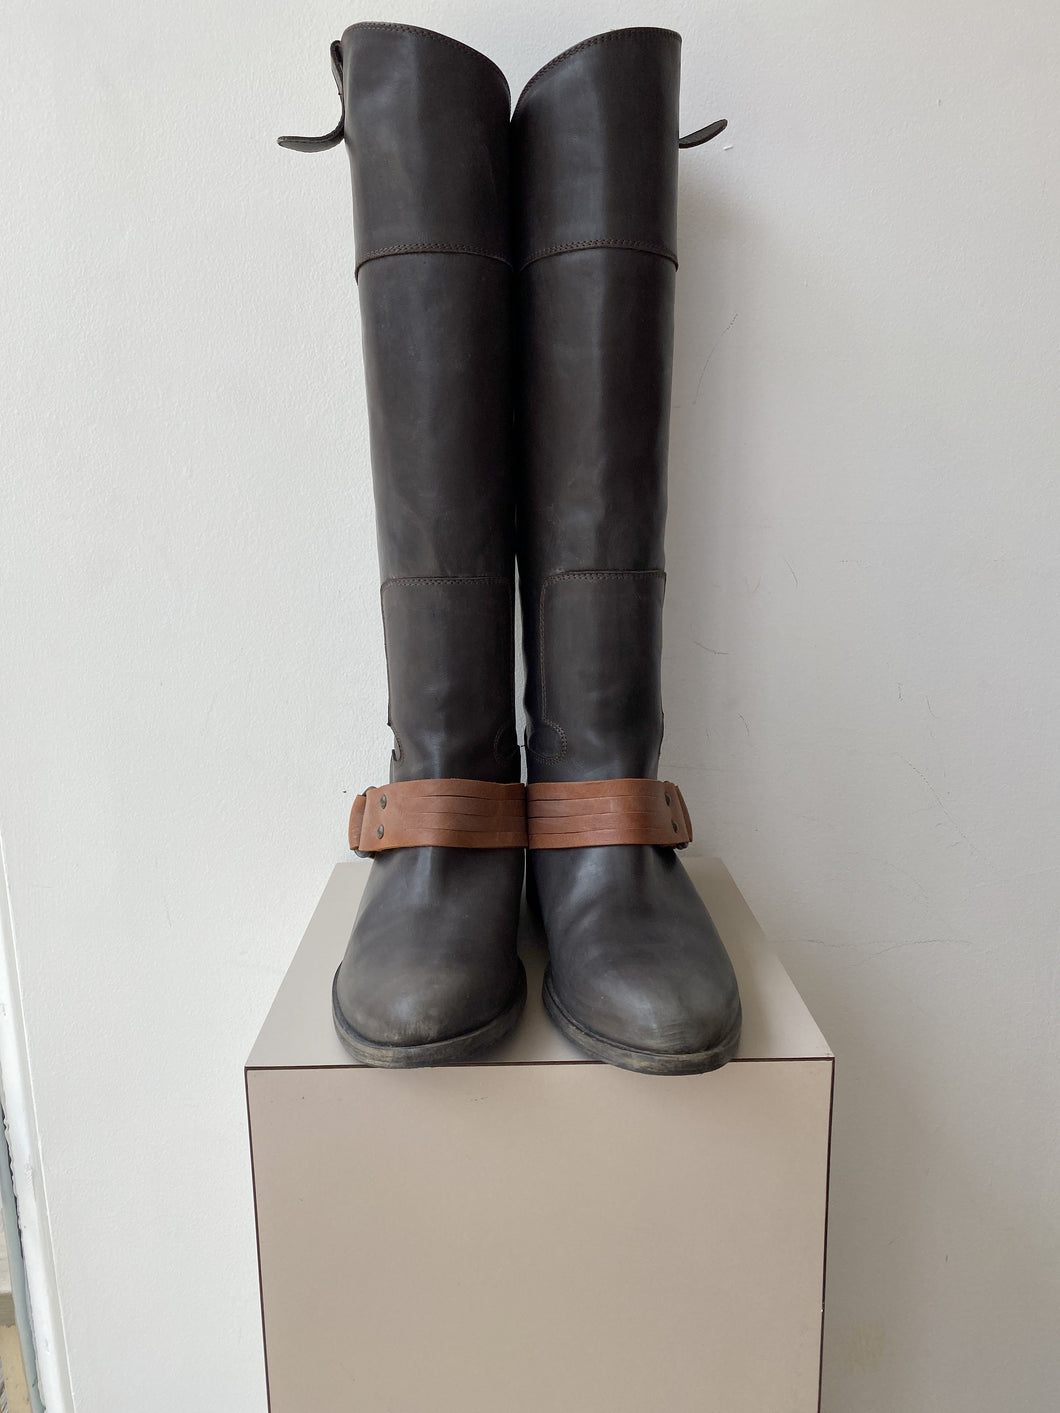 Via Roma 15 gray and brown leather tall boots size 8 NEW